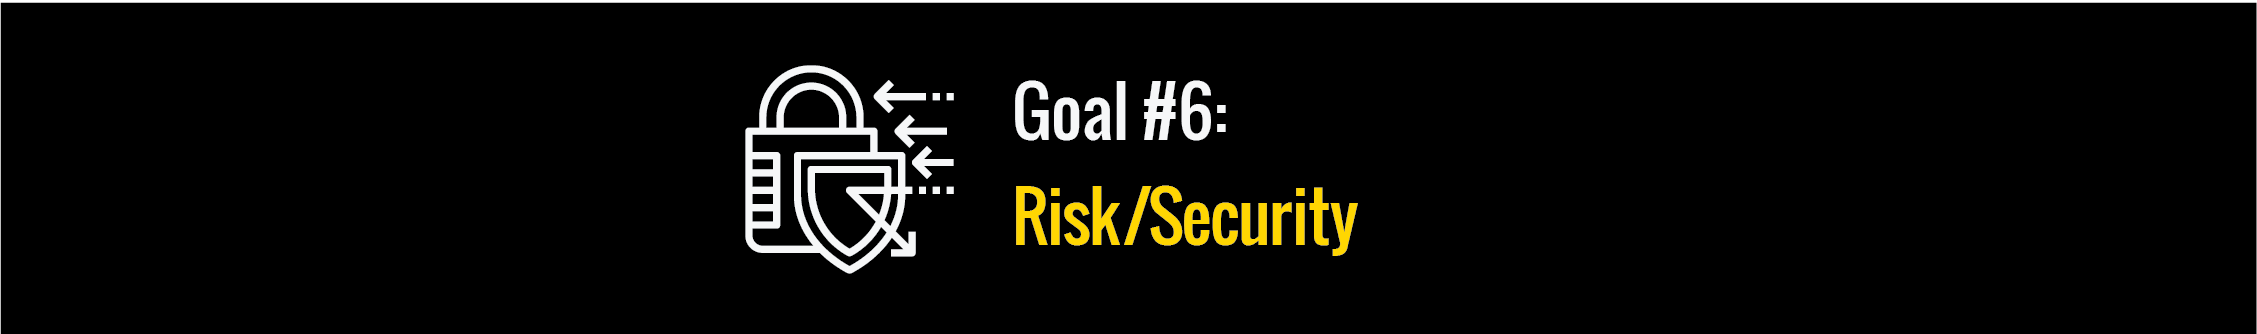 Goal #6: Risk/Security